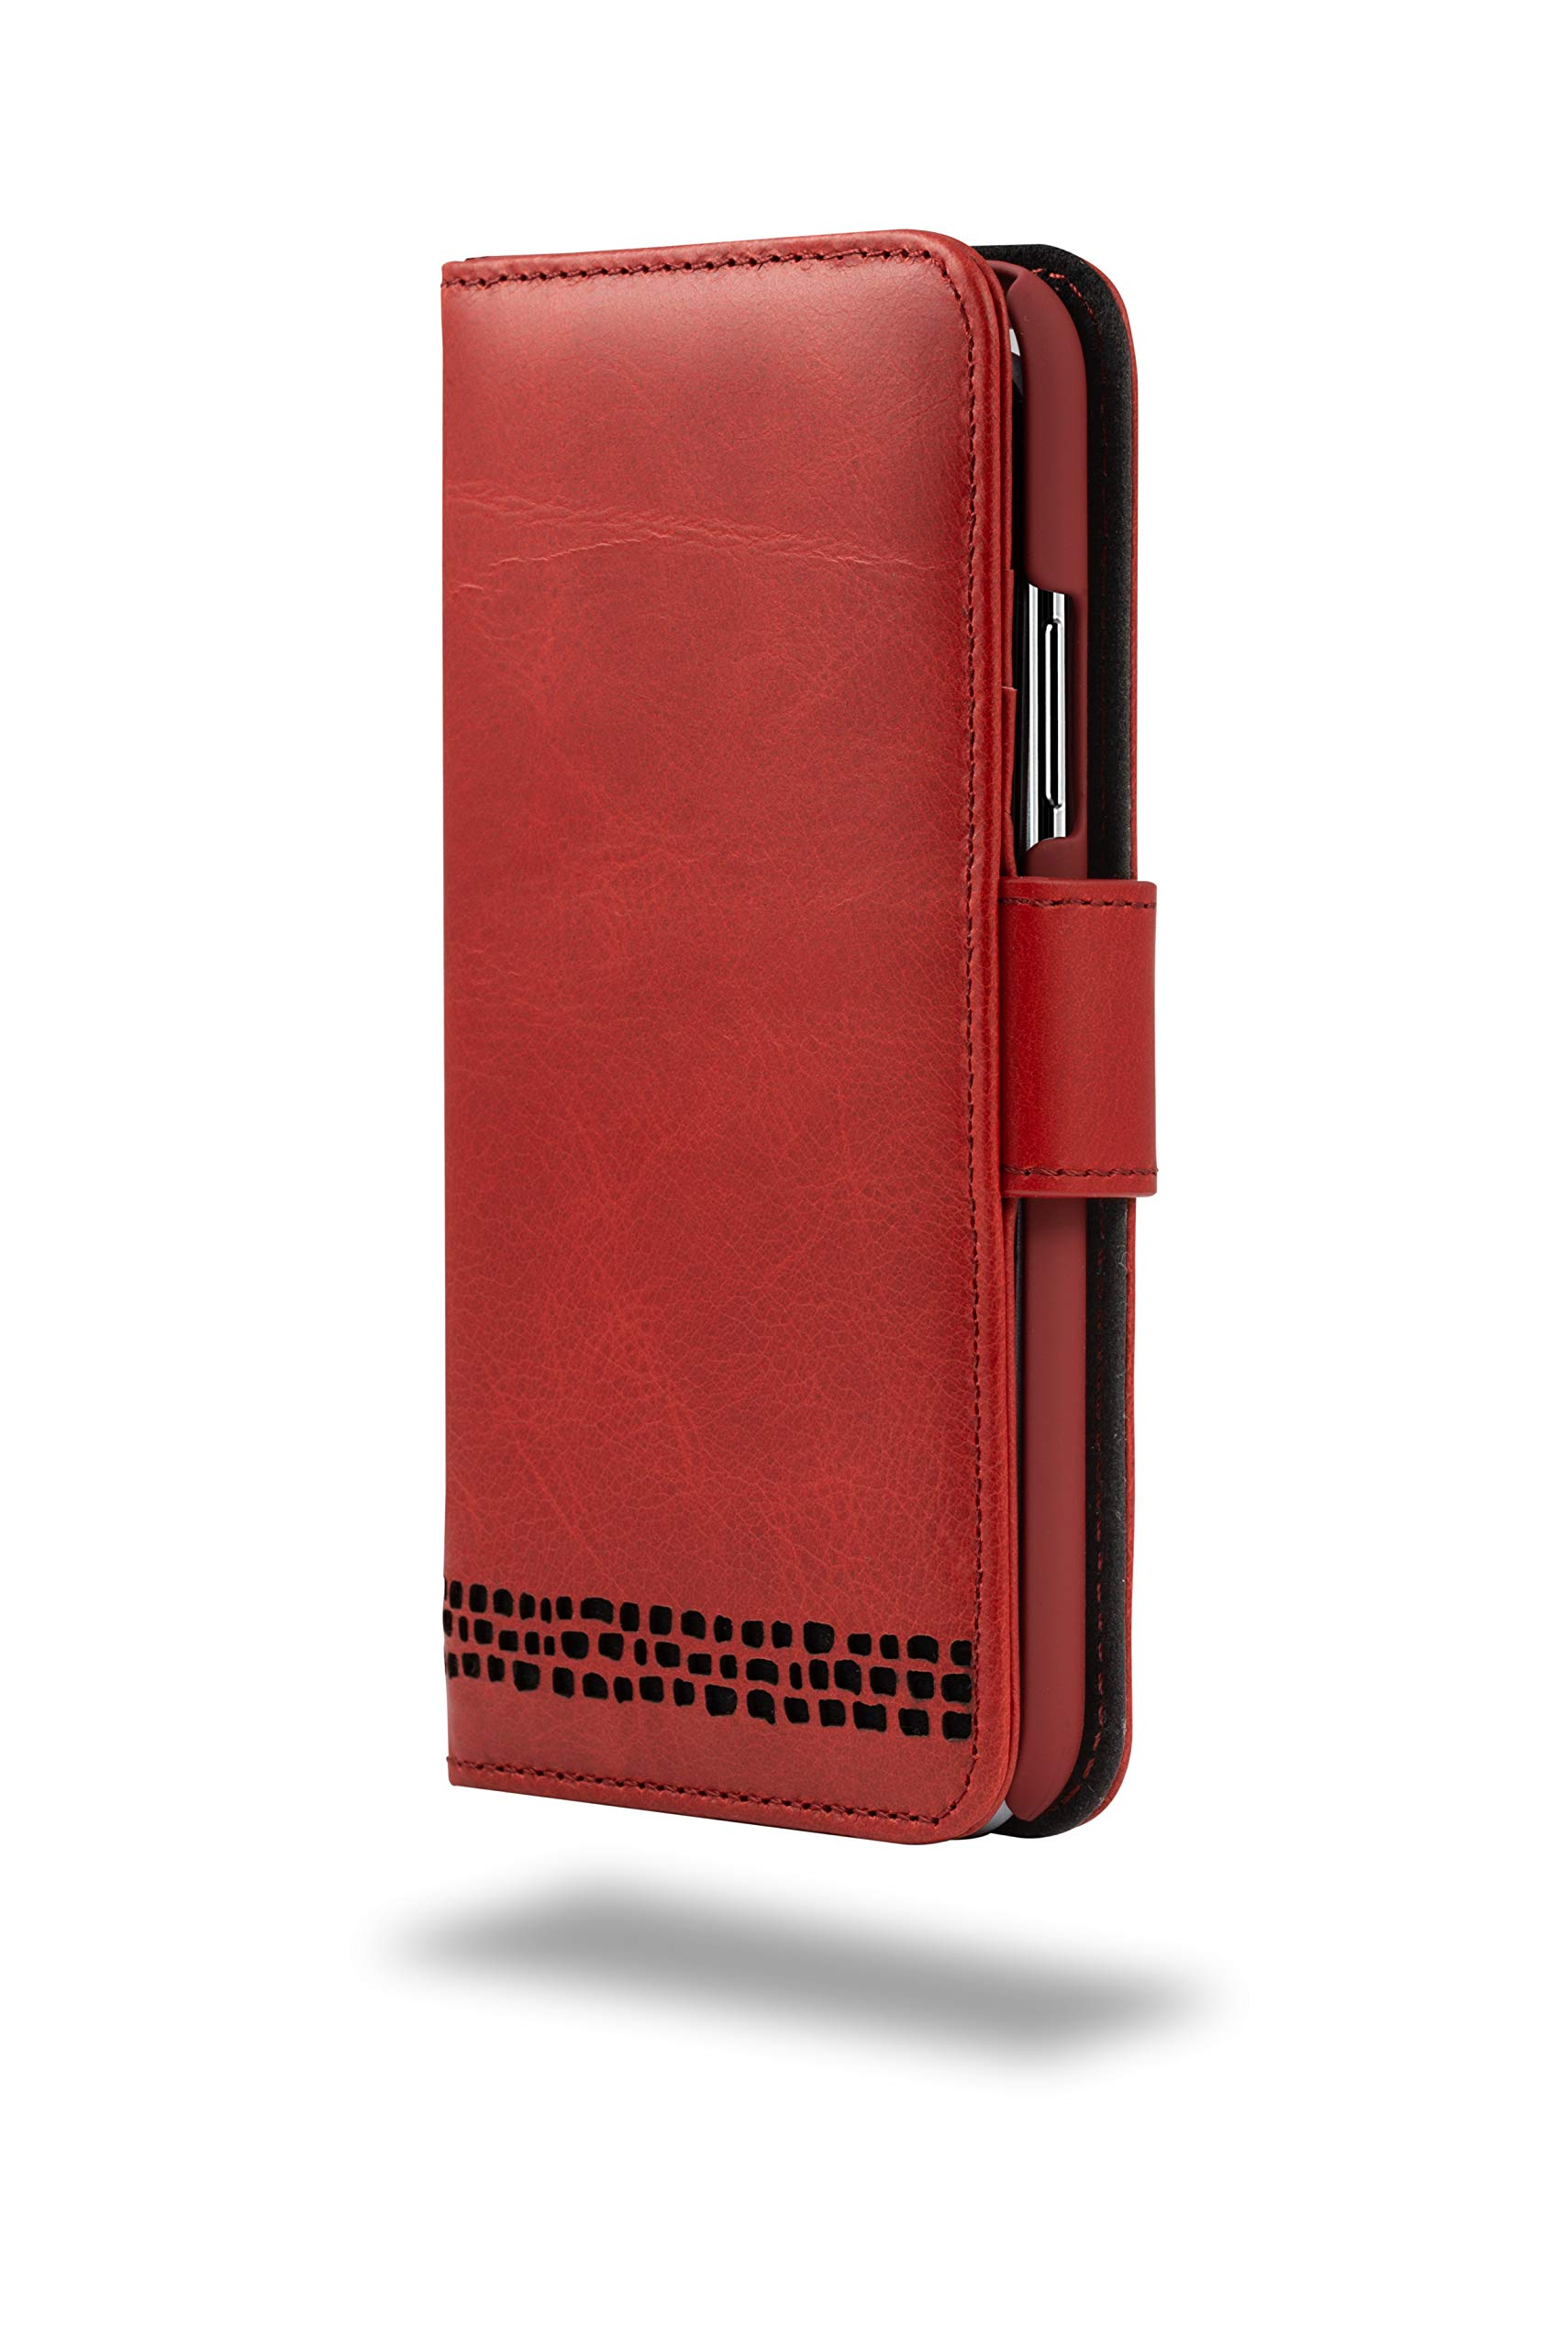 iPhone 7 Case – Ed Hicks iPhone 7 Leather Case – Genuine Leather – Luxury Folio Wallet Flip – Card Slots – Bill Pocket– Double Shield – Color Matched Phone Holder. Vintage RED with Black Detailing